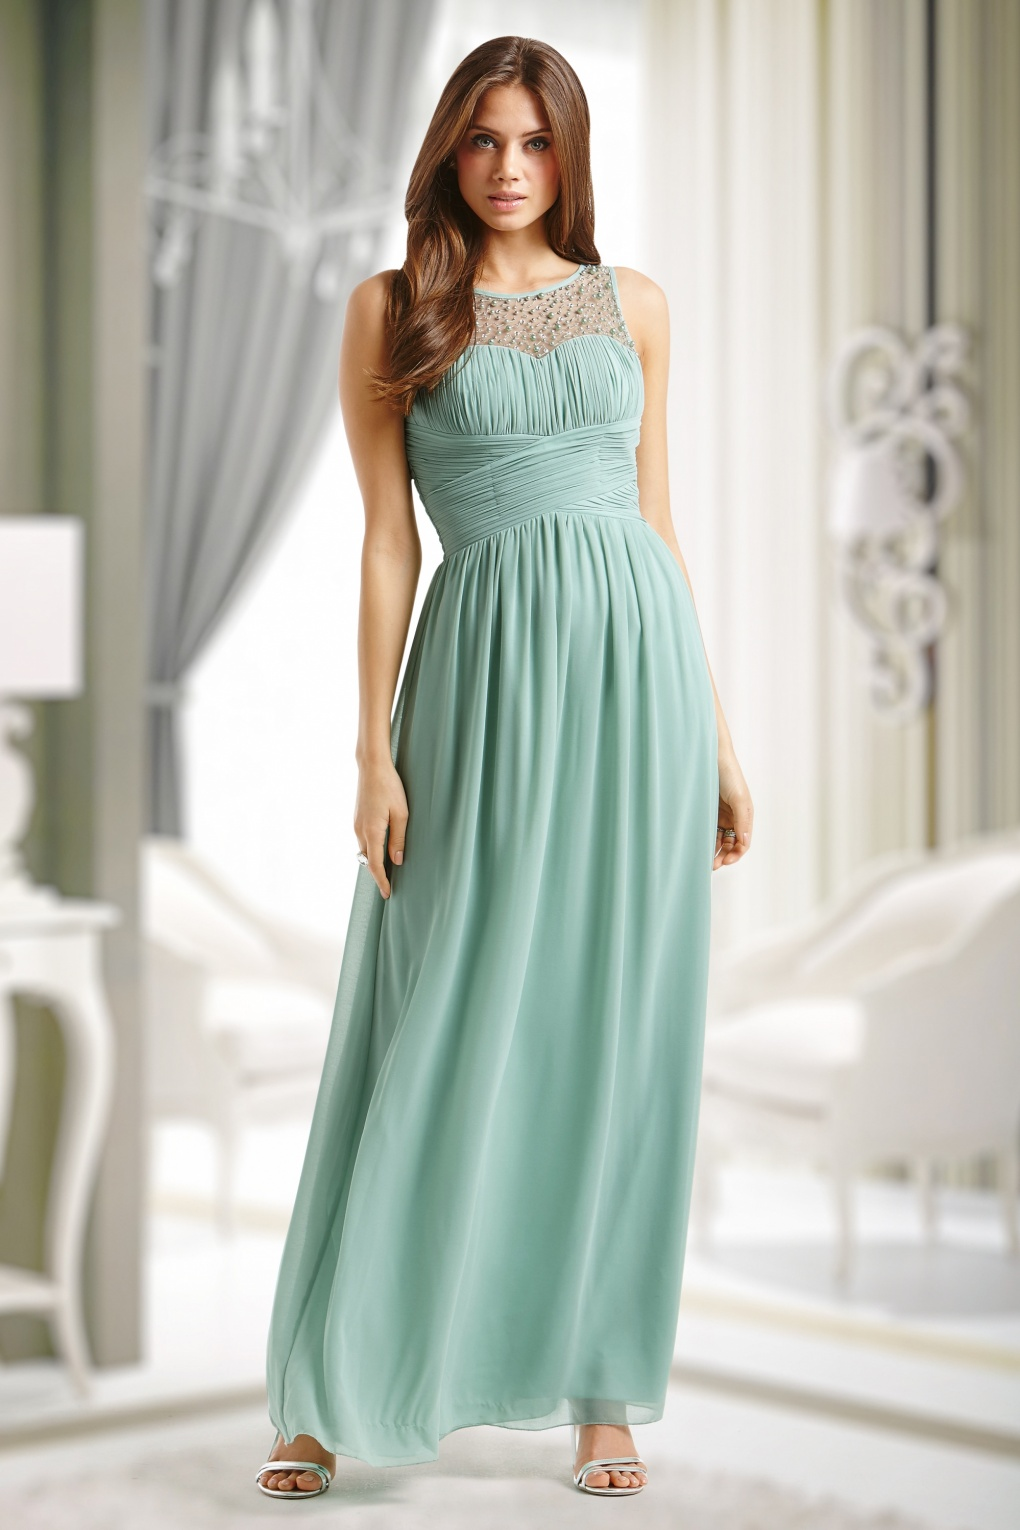 50s Cinderella Embellished Detail Maxi Dress in Mint